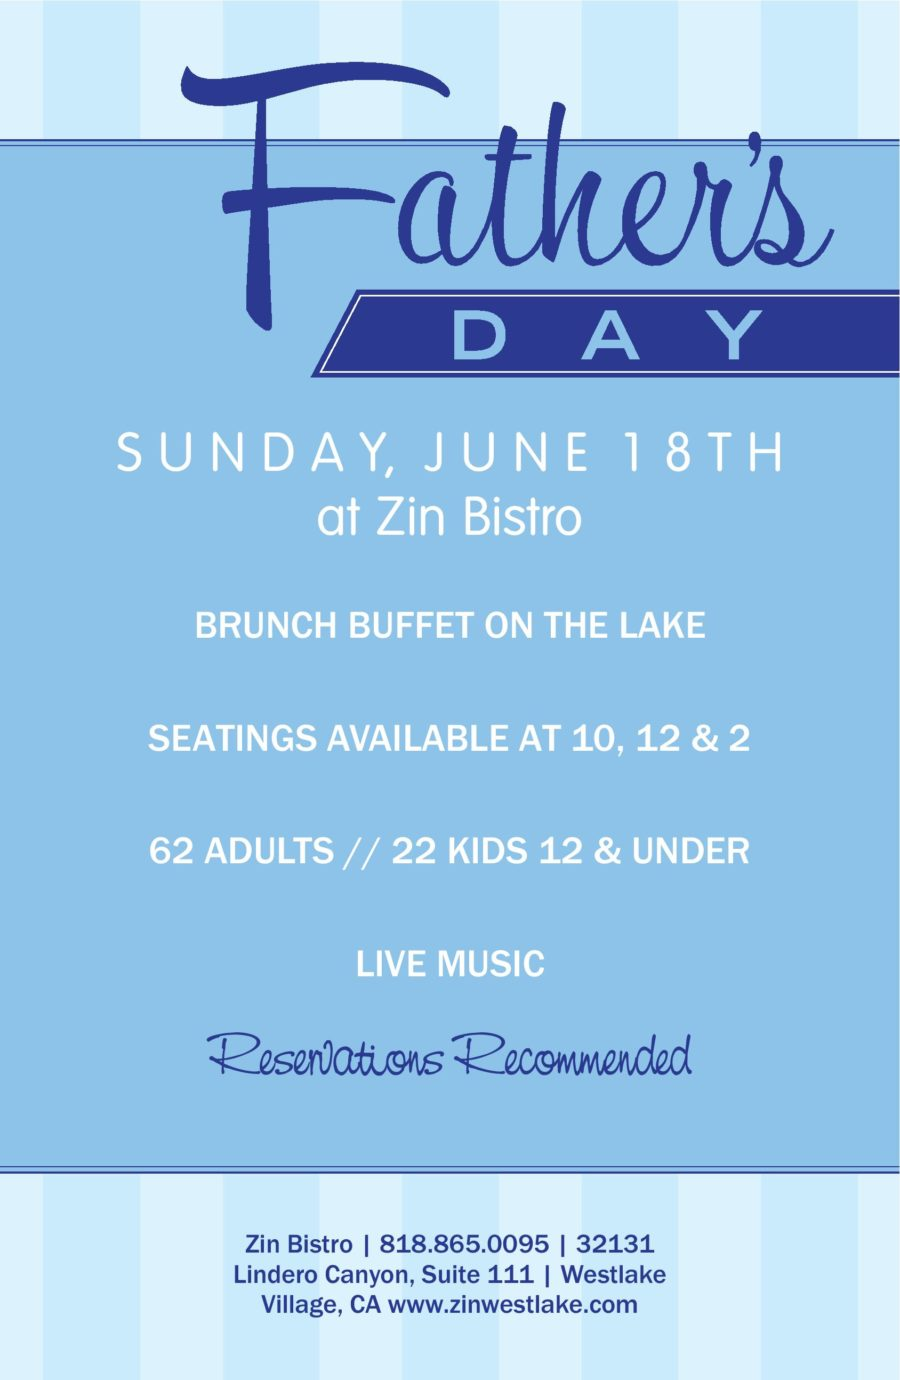 Celebrate Father's Day on the Lake at Zin Bistro